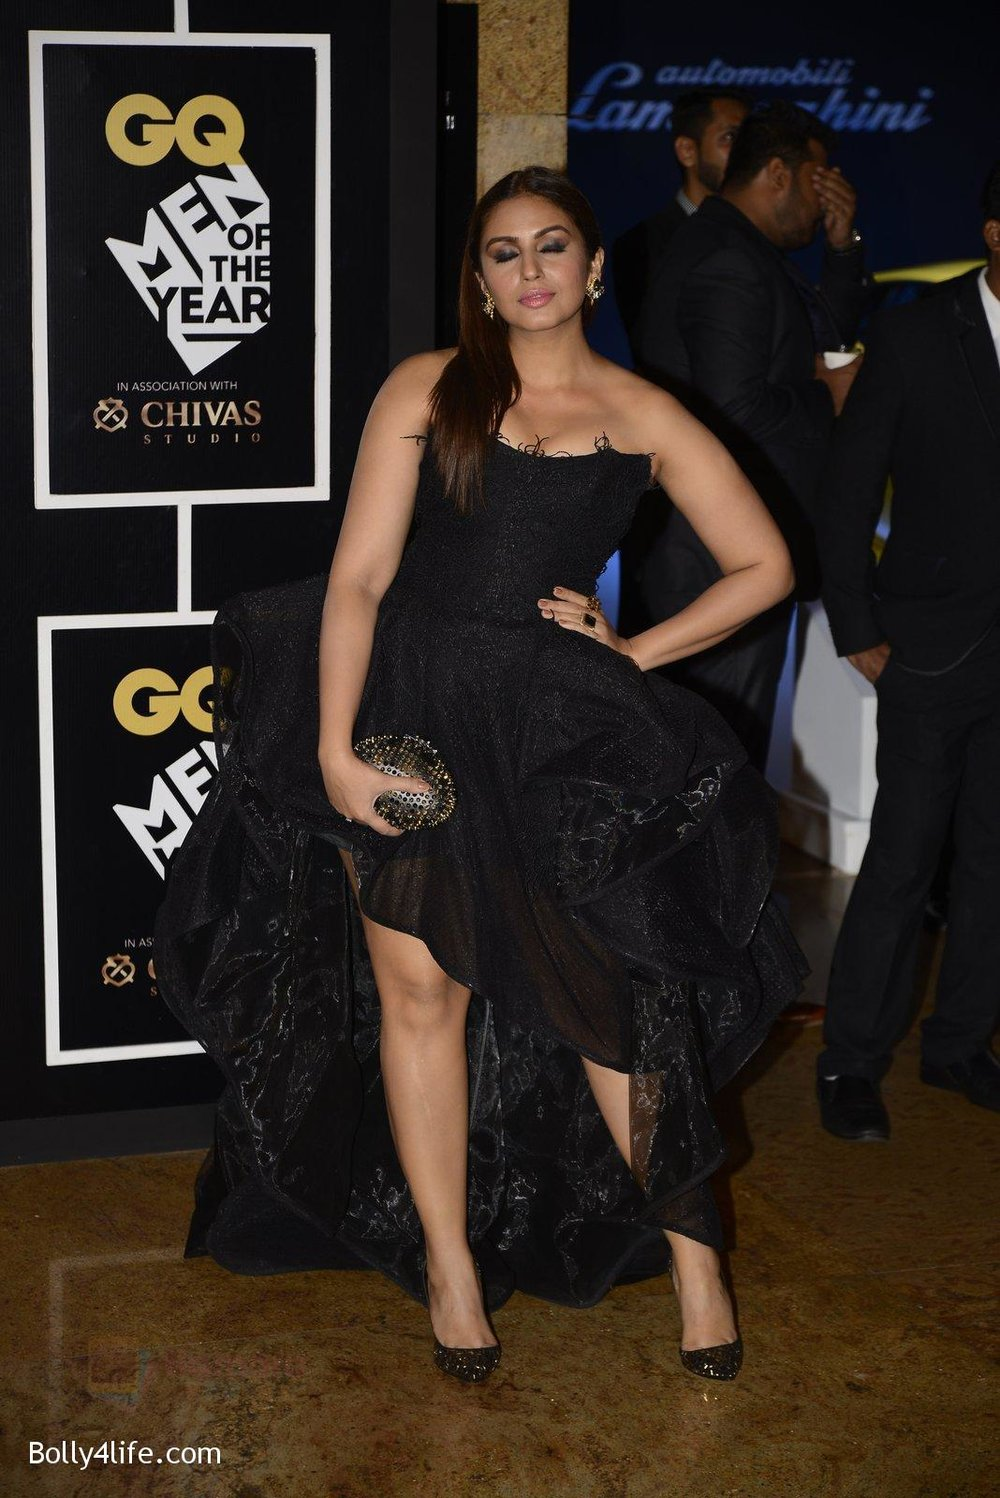 Huma-Qureshi-at-GQ-MEN-OF-THE-YEAR-on-27th-Sept-2016-1184.jpg